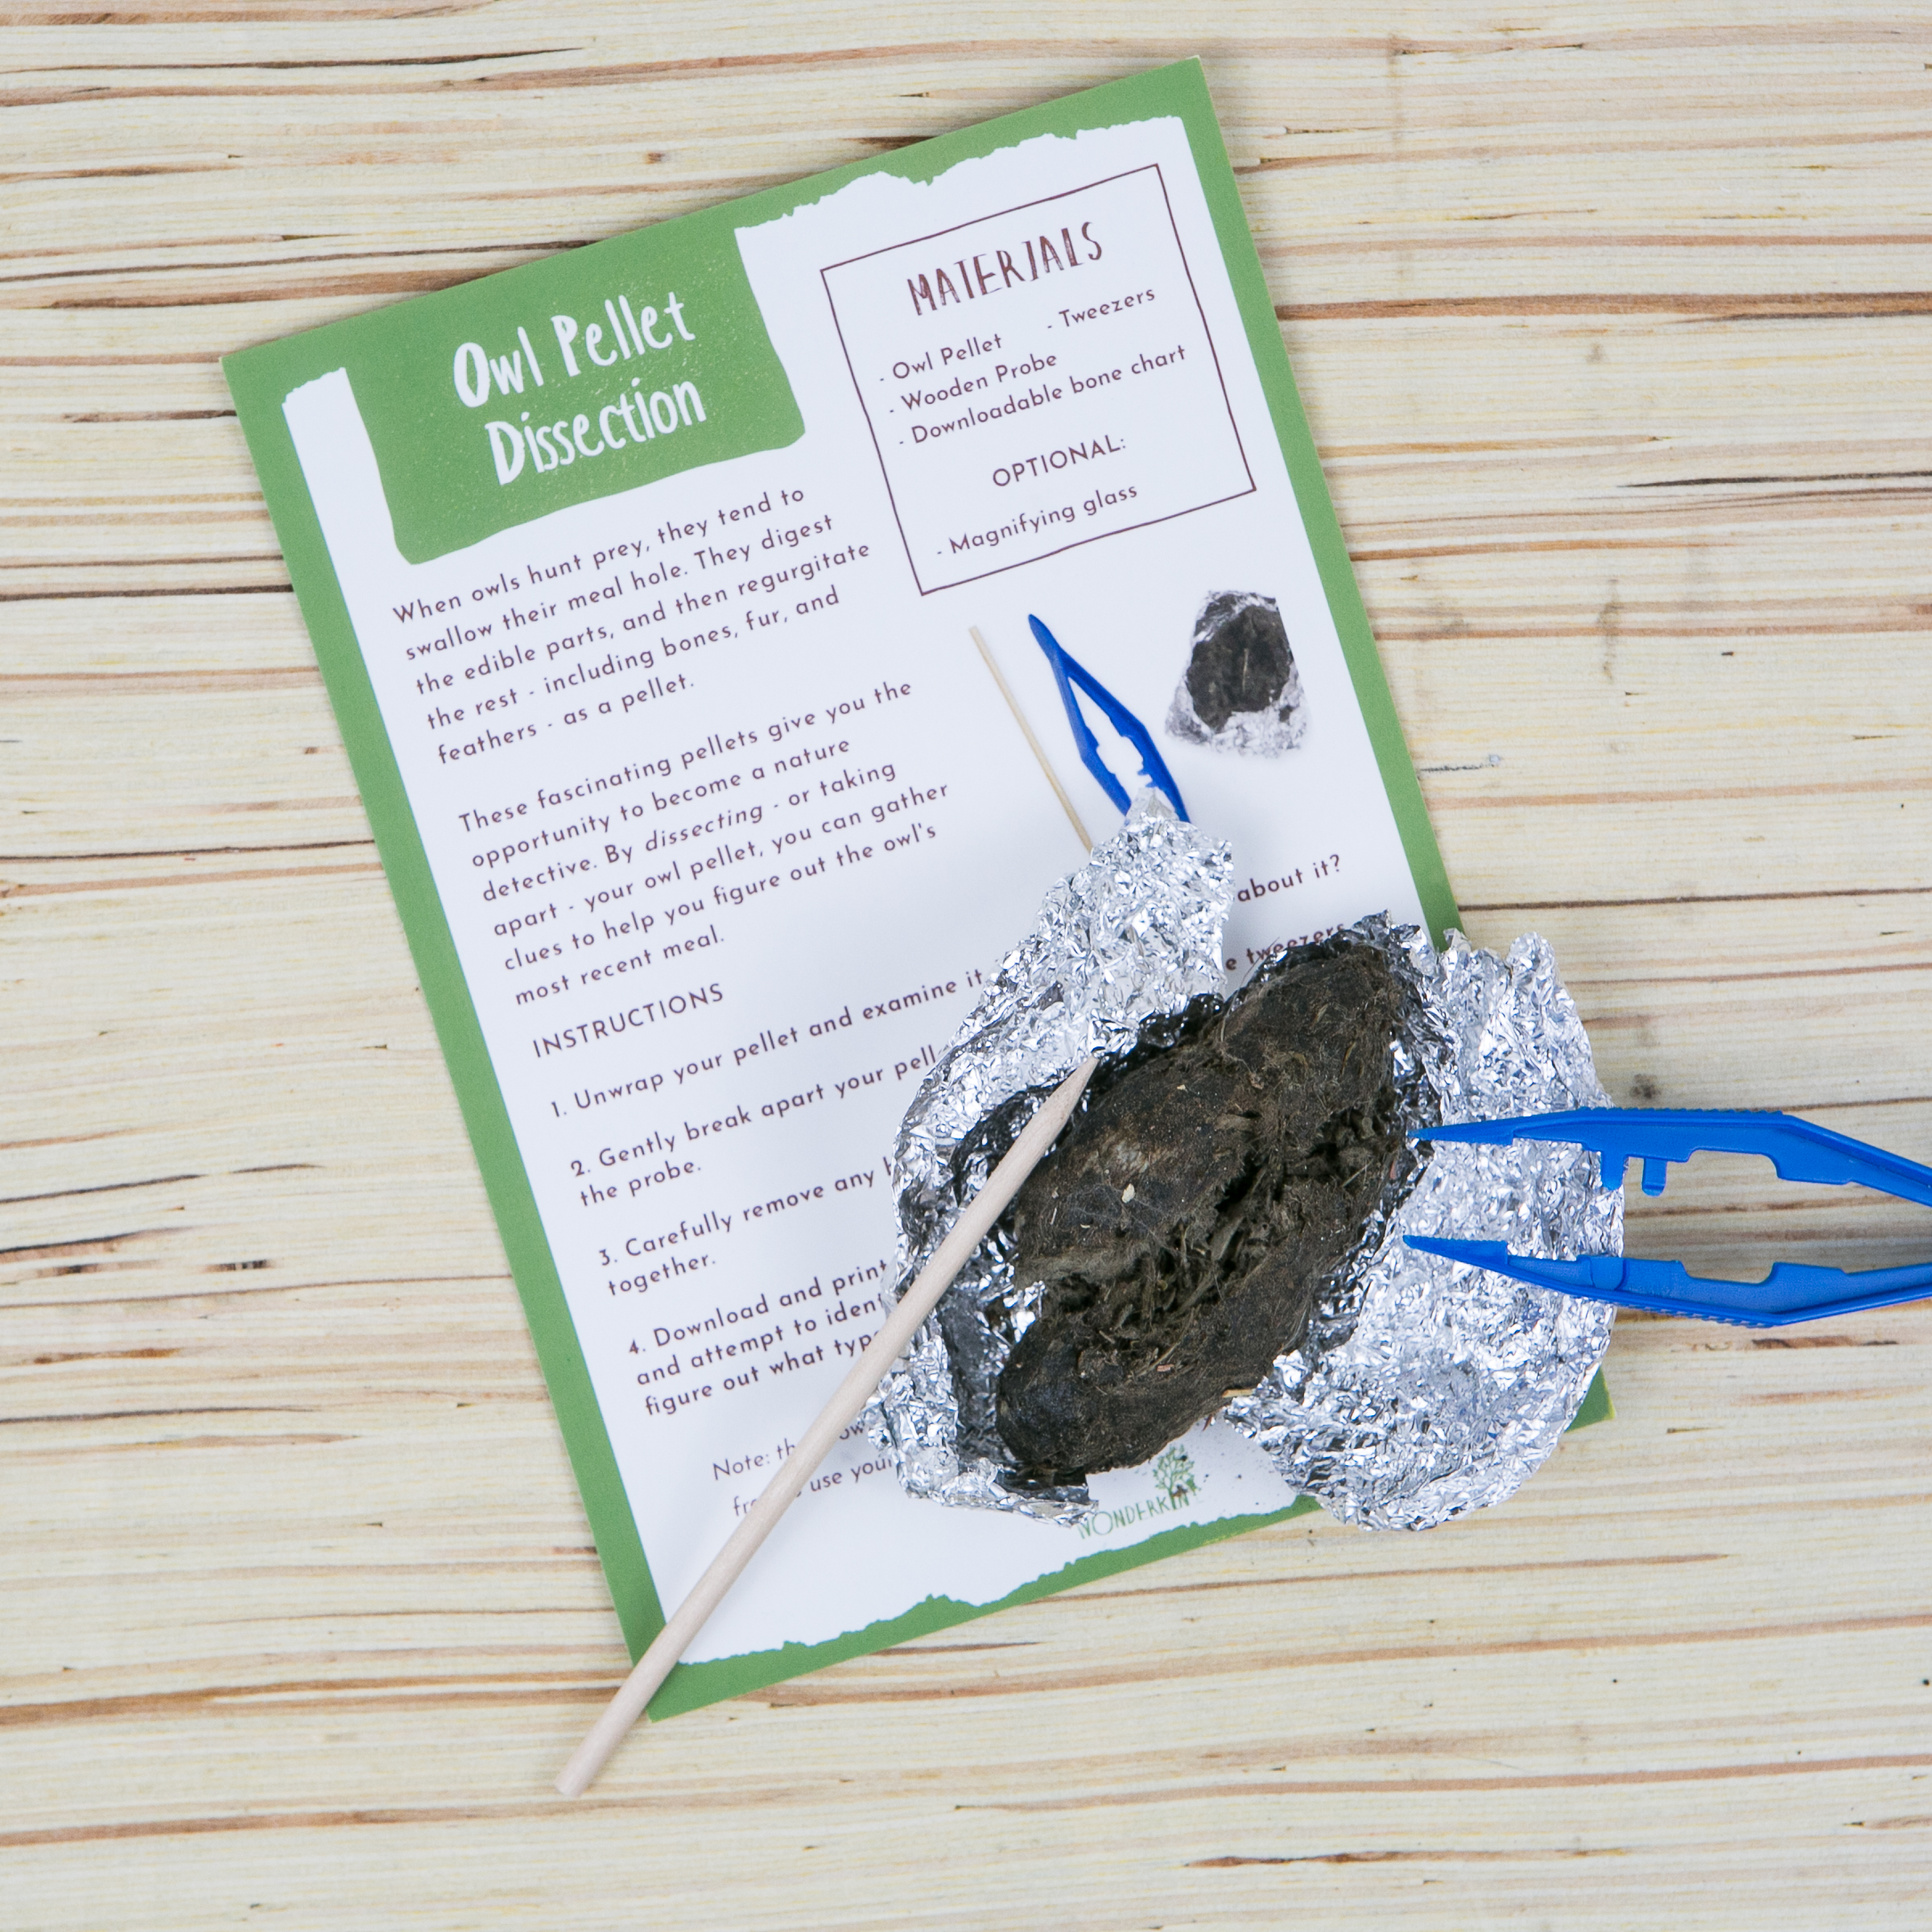 Owl pellet dissection kit, featured in the Wonderkin Owl Box